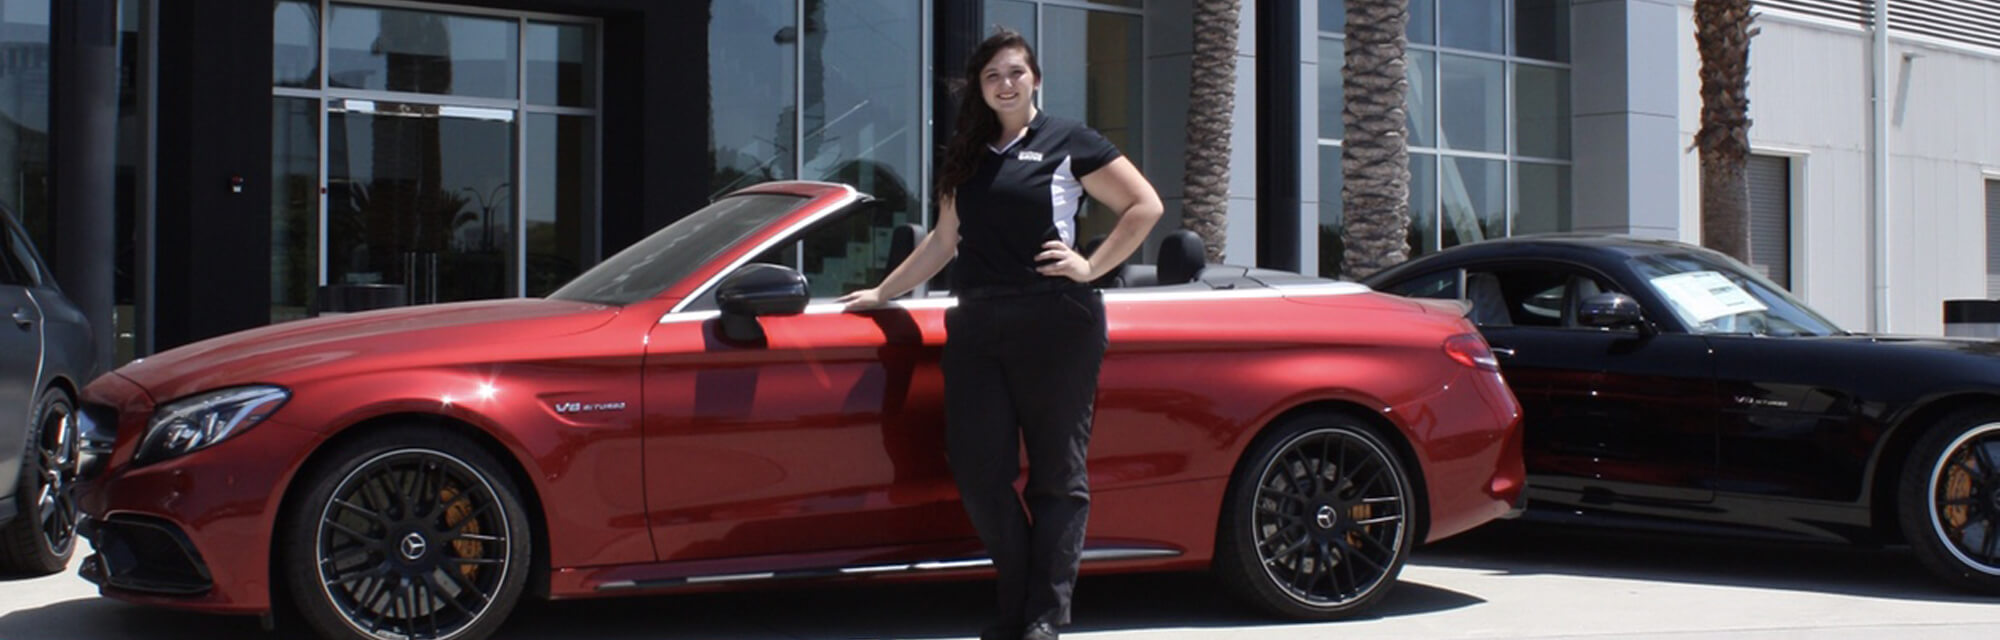 UTI graduate Veronica Anderson standing next to a red Mercedes-Benz convertible, and she also graduated from the Mercedes-Benz DRIVE Program at UTI Long Beach